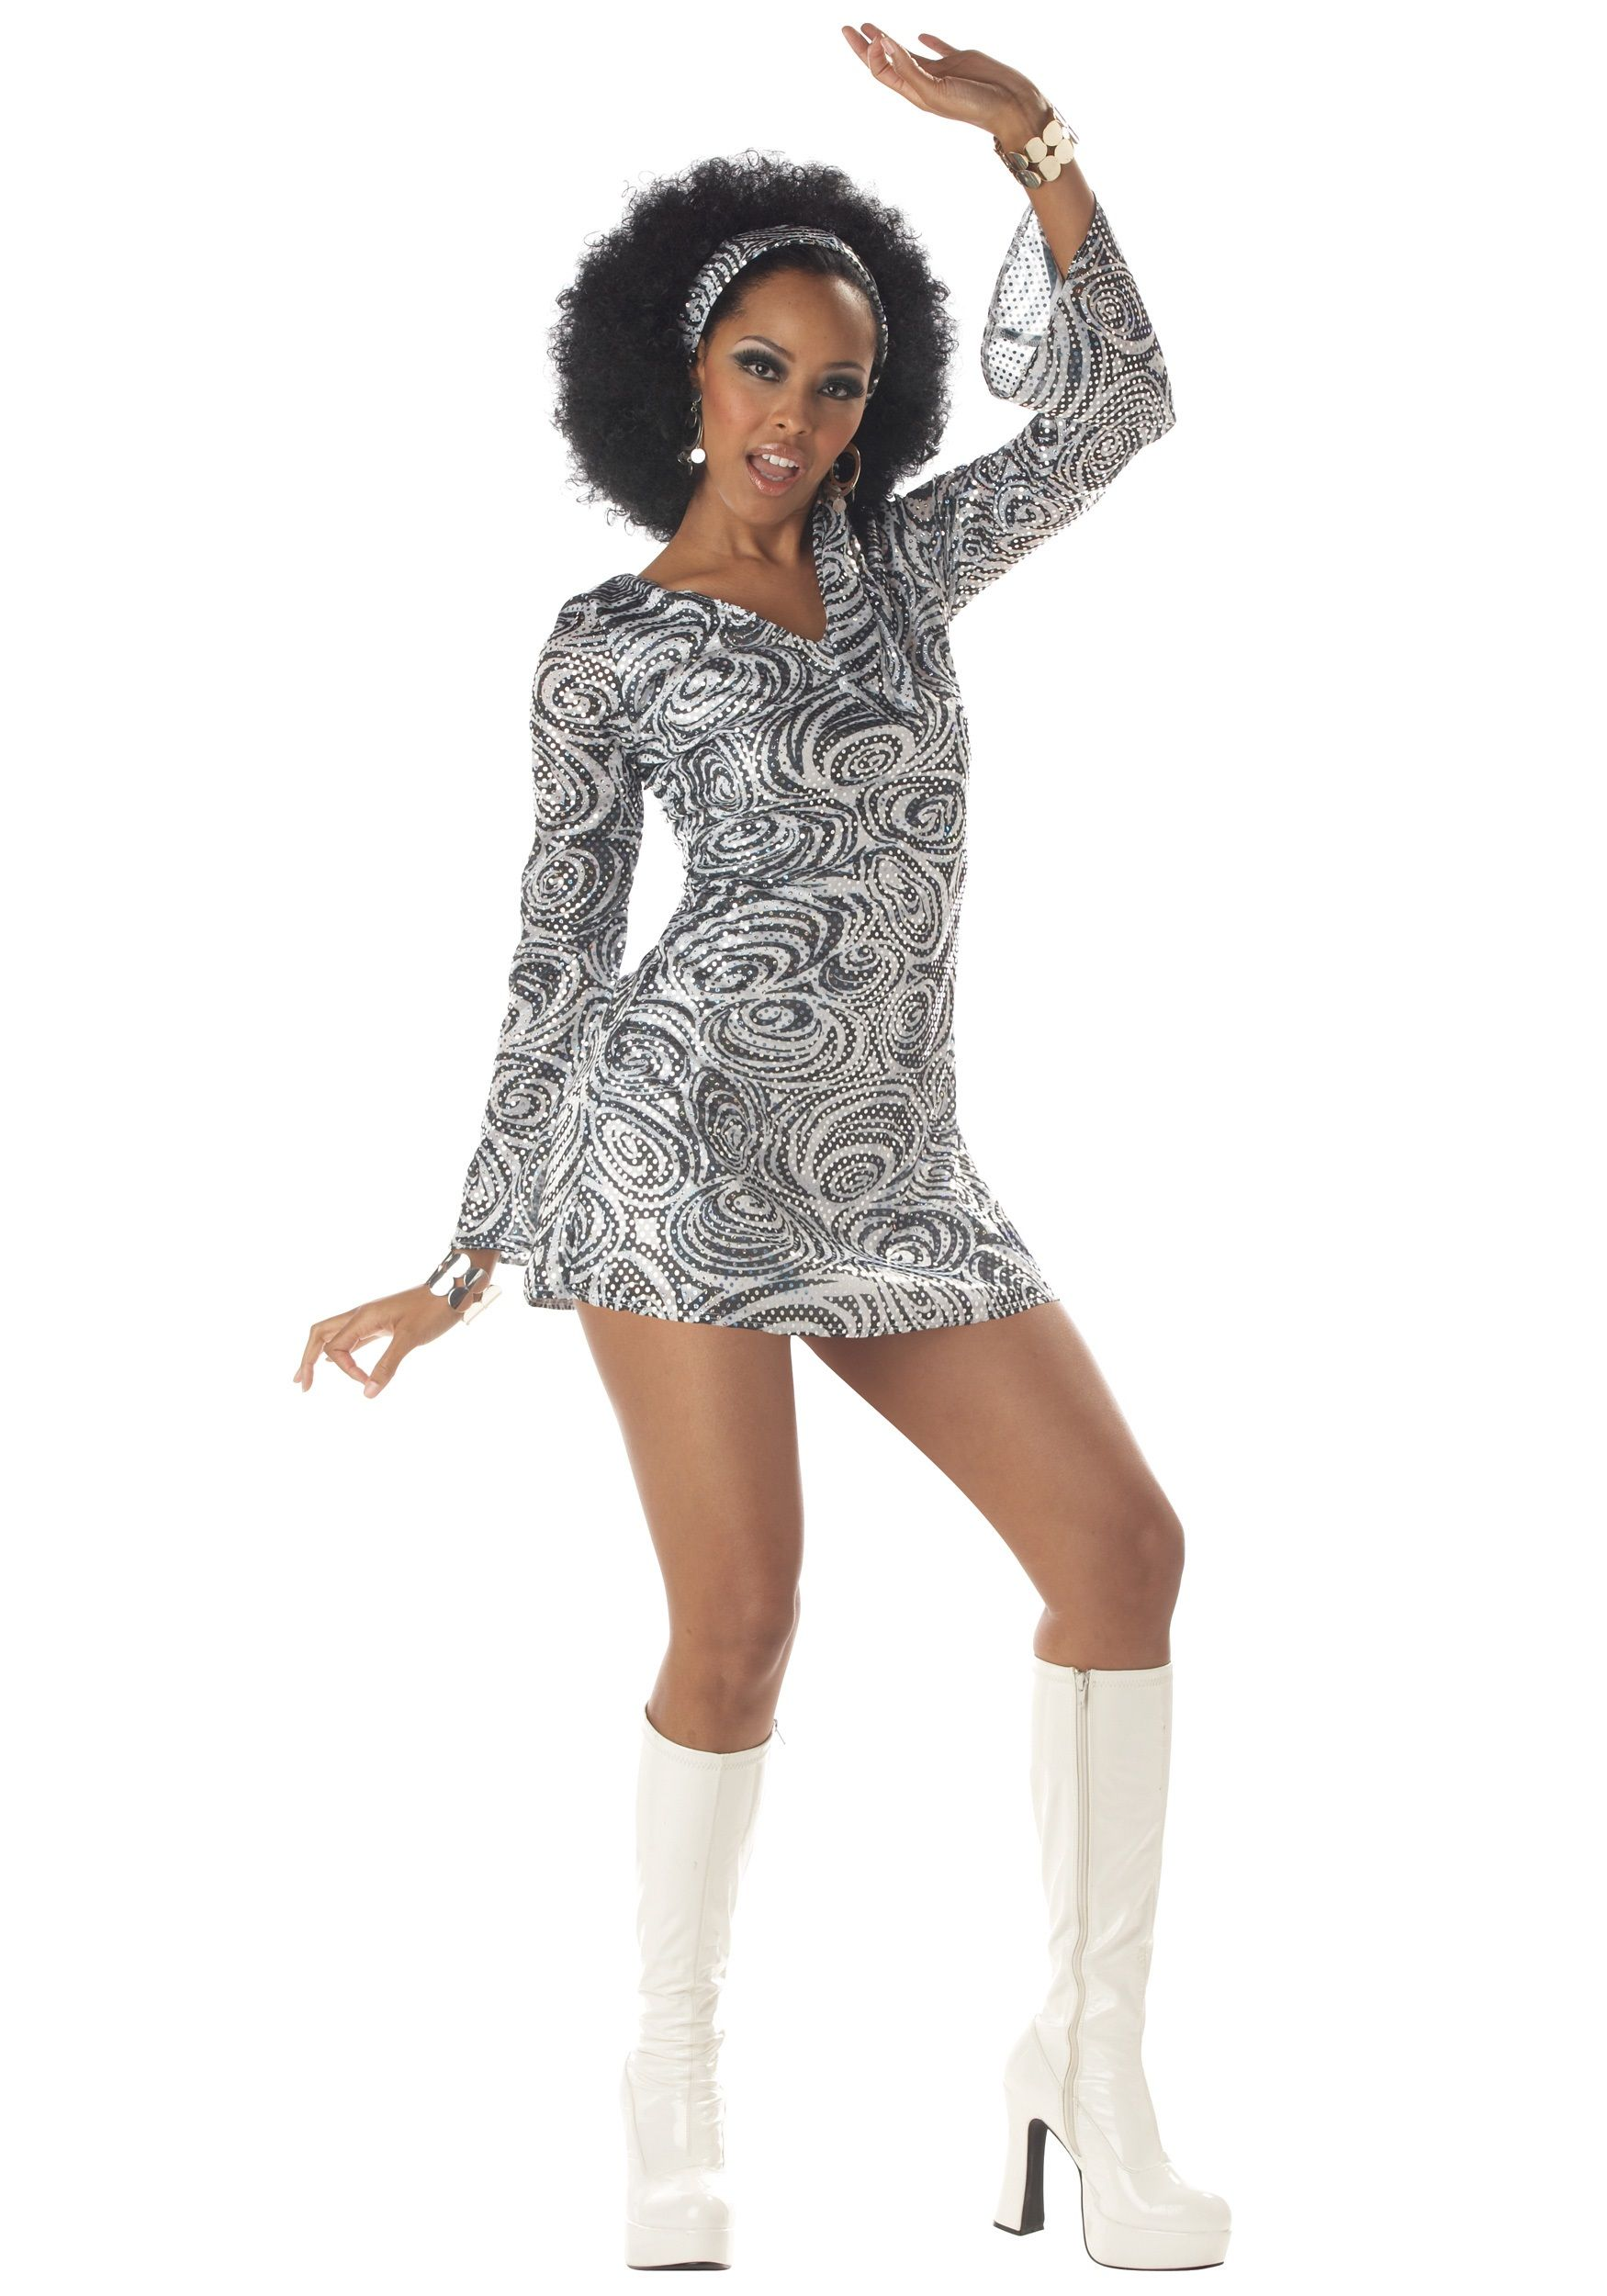 Ladies Groovy Disco Diva Jumpsuit 1970s Costume Flares 70's Fancy Dress Outfit